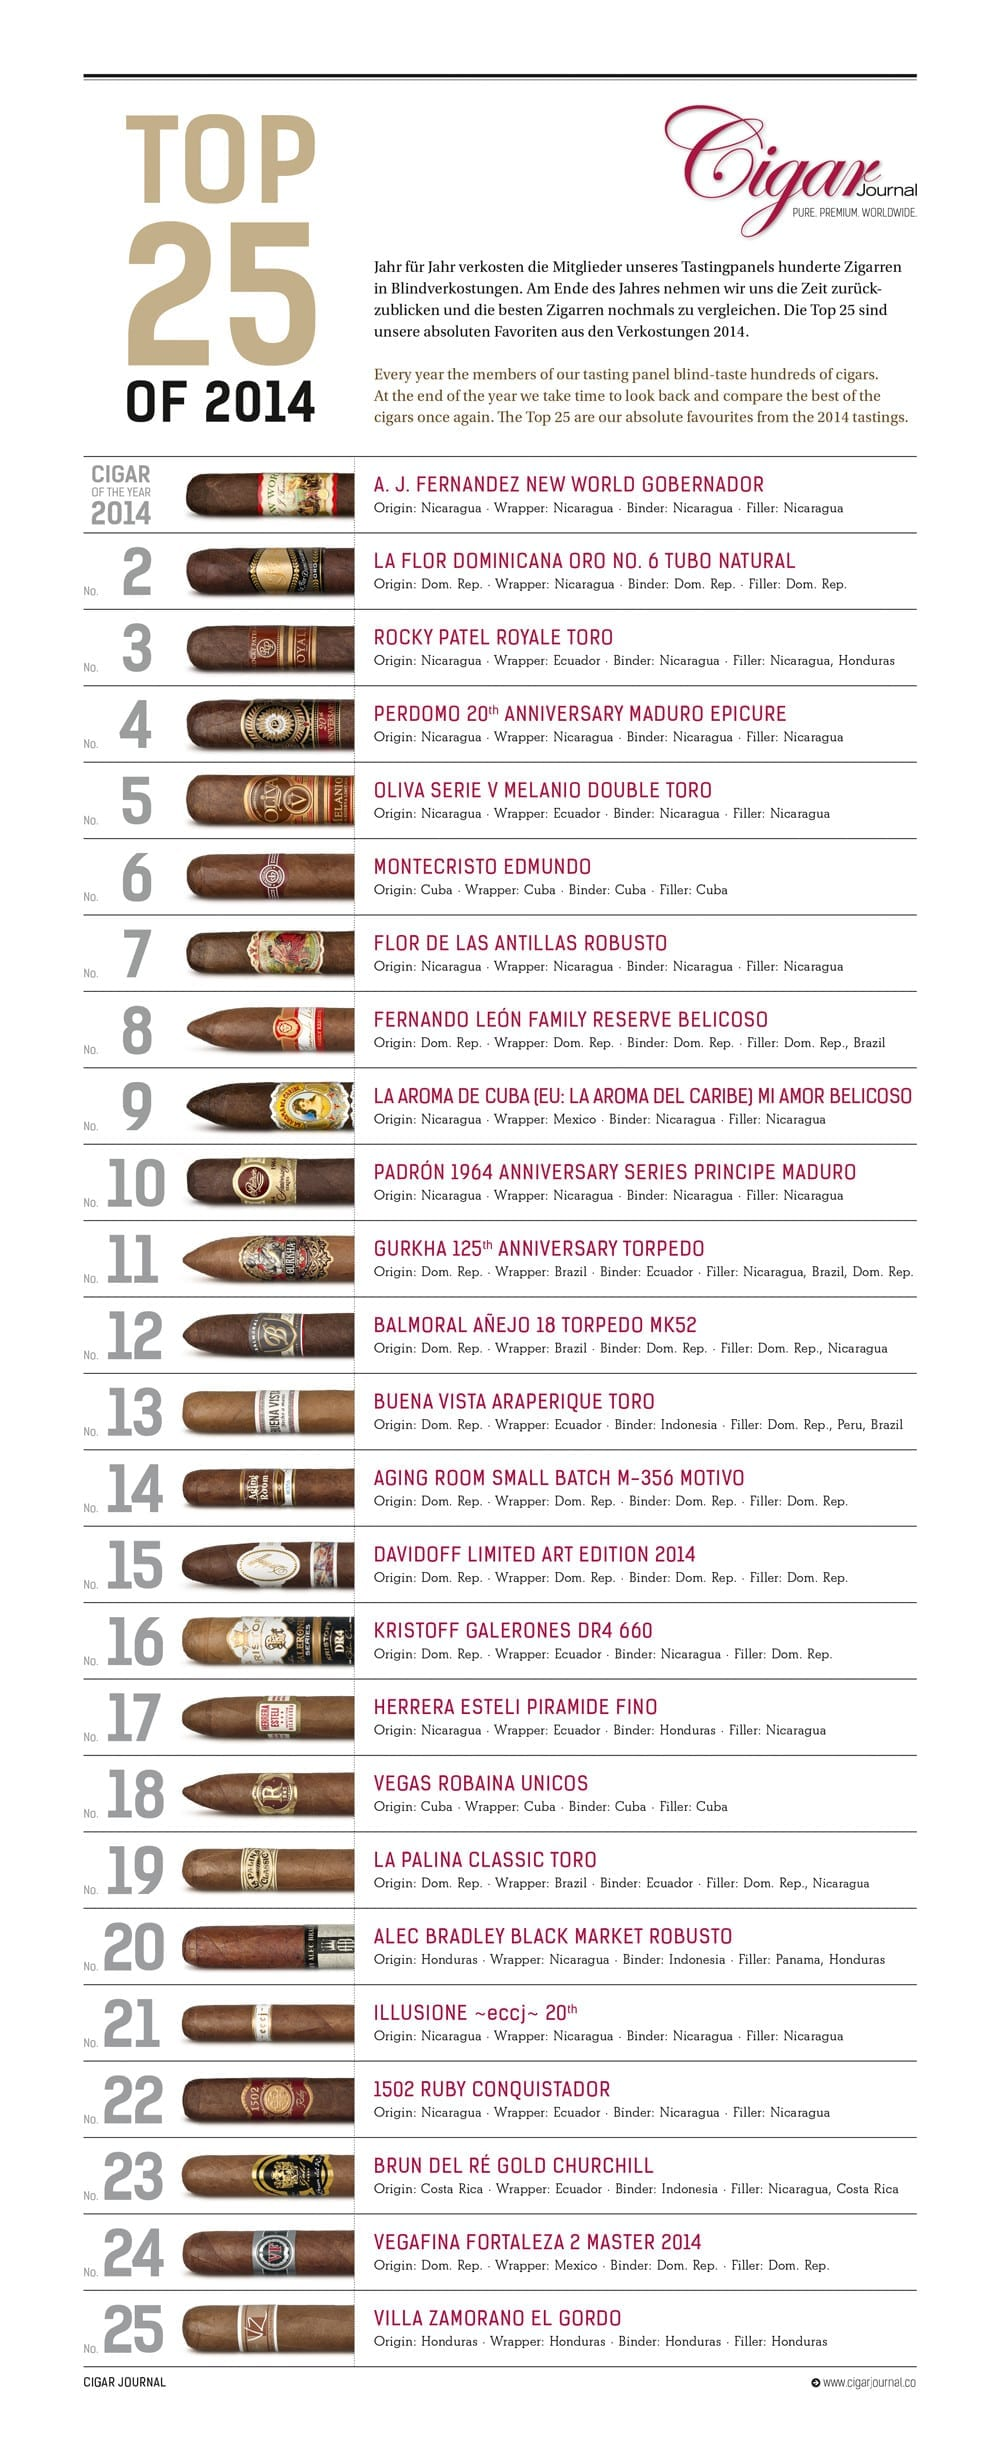 Cigar Journal Top 25 Cigars of 2014 - The Complete List